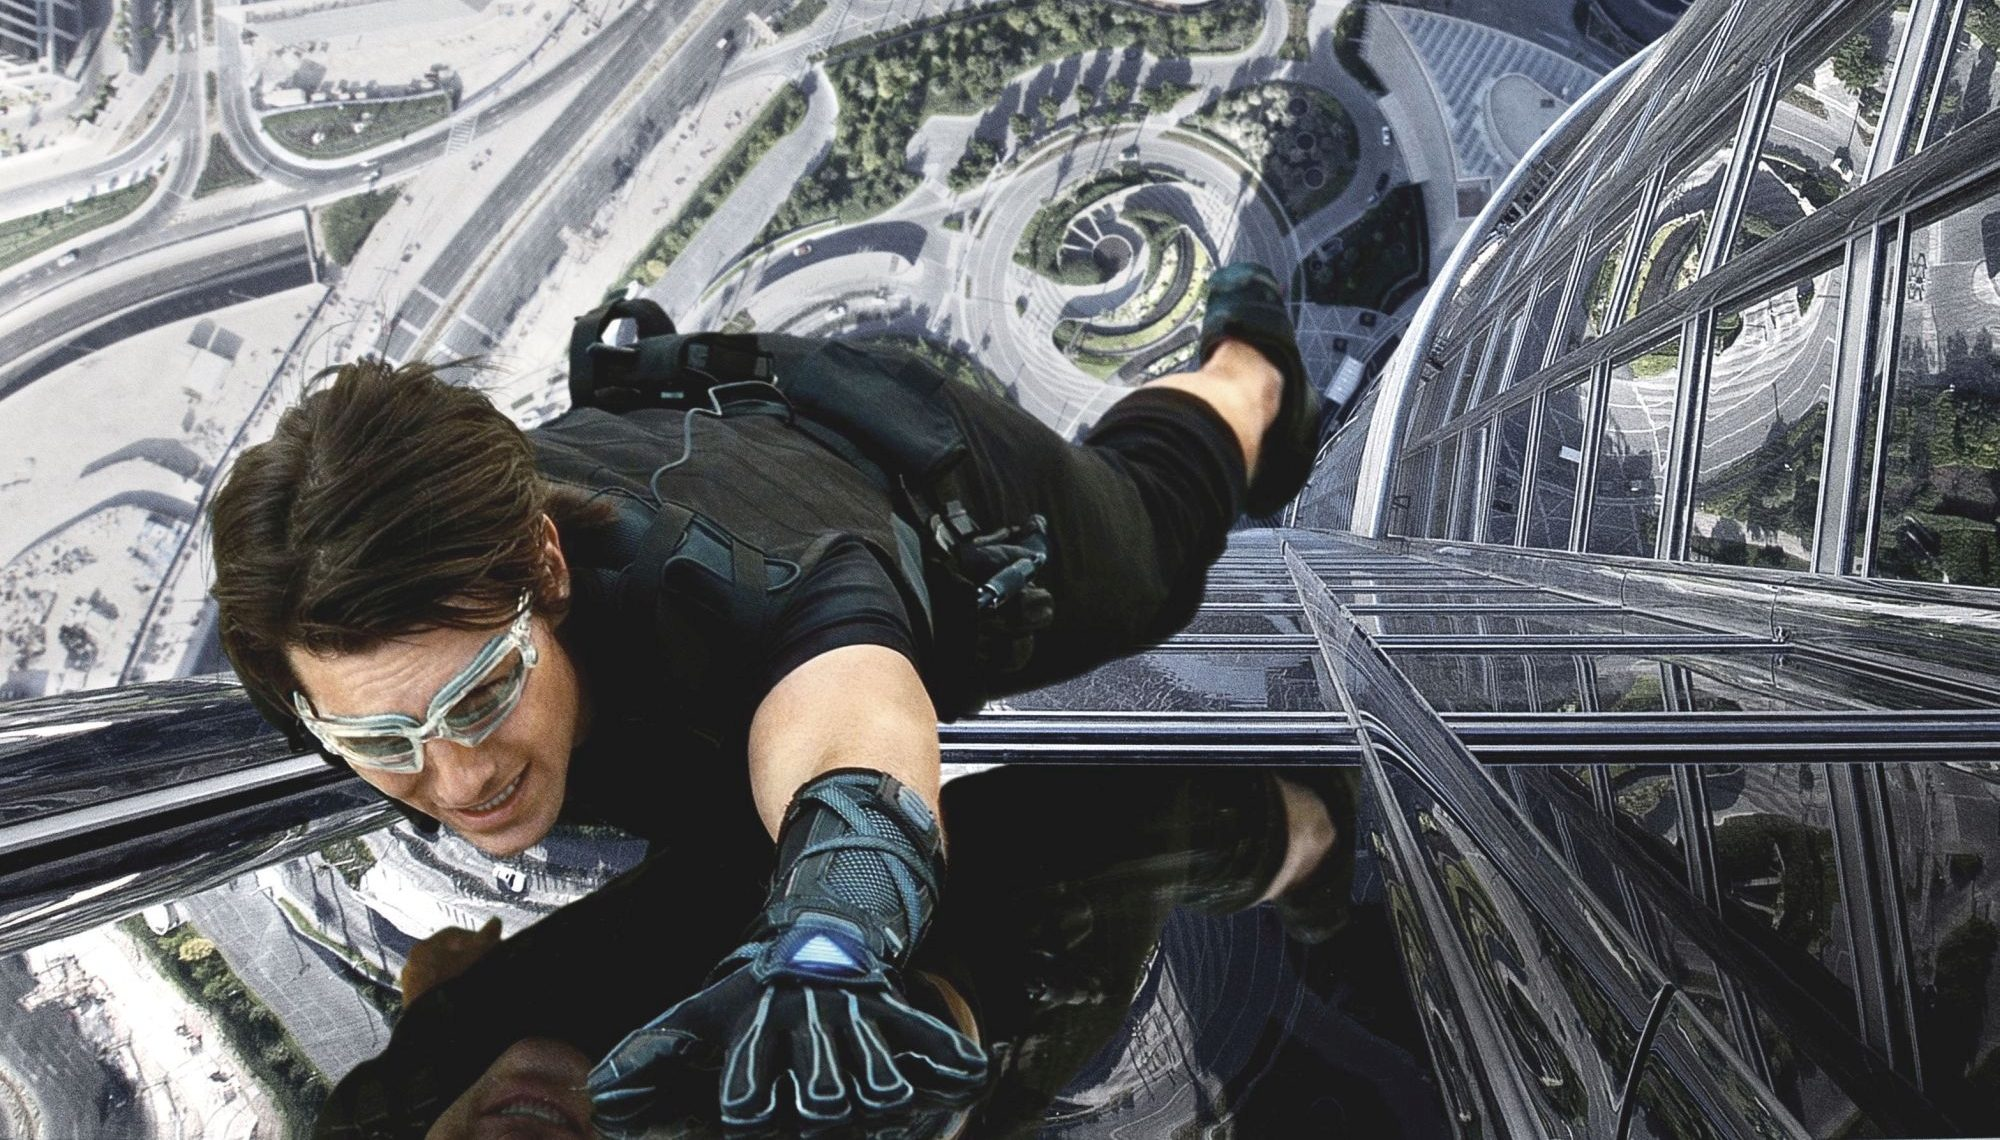 Filmszene aus Mission: Impossible 4 - Phantom Protokoll